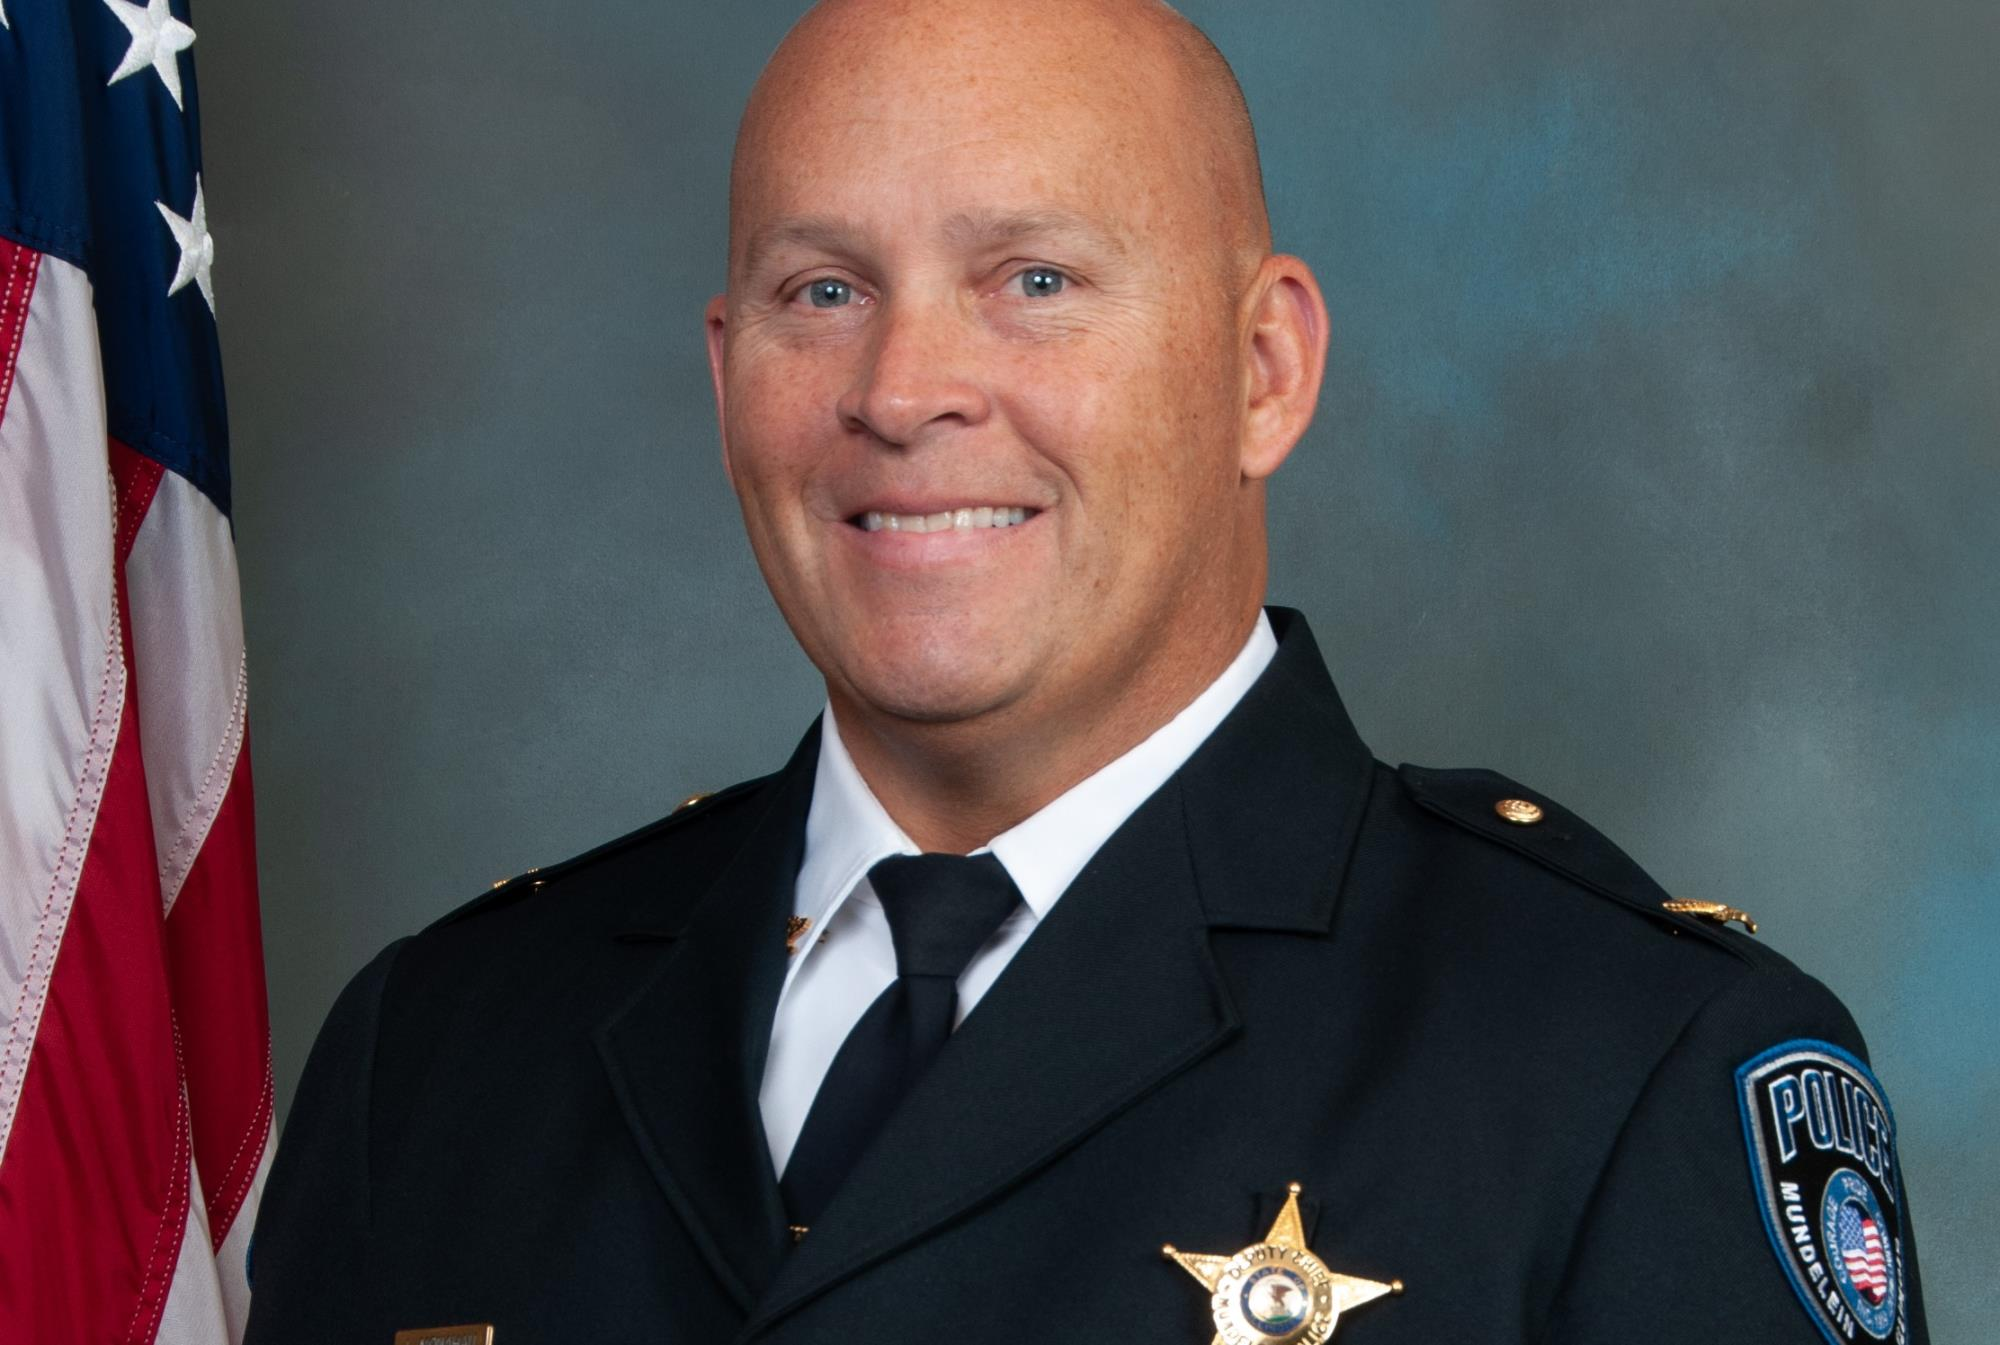 Trustees Approve Interim Police Chief Appointment